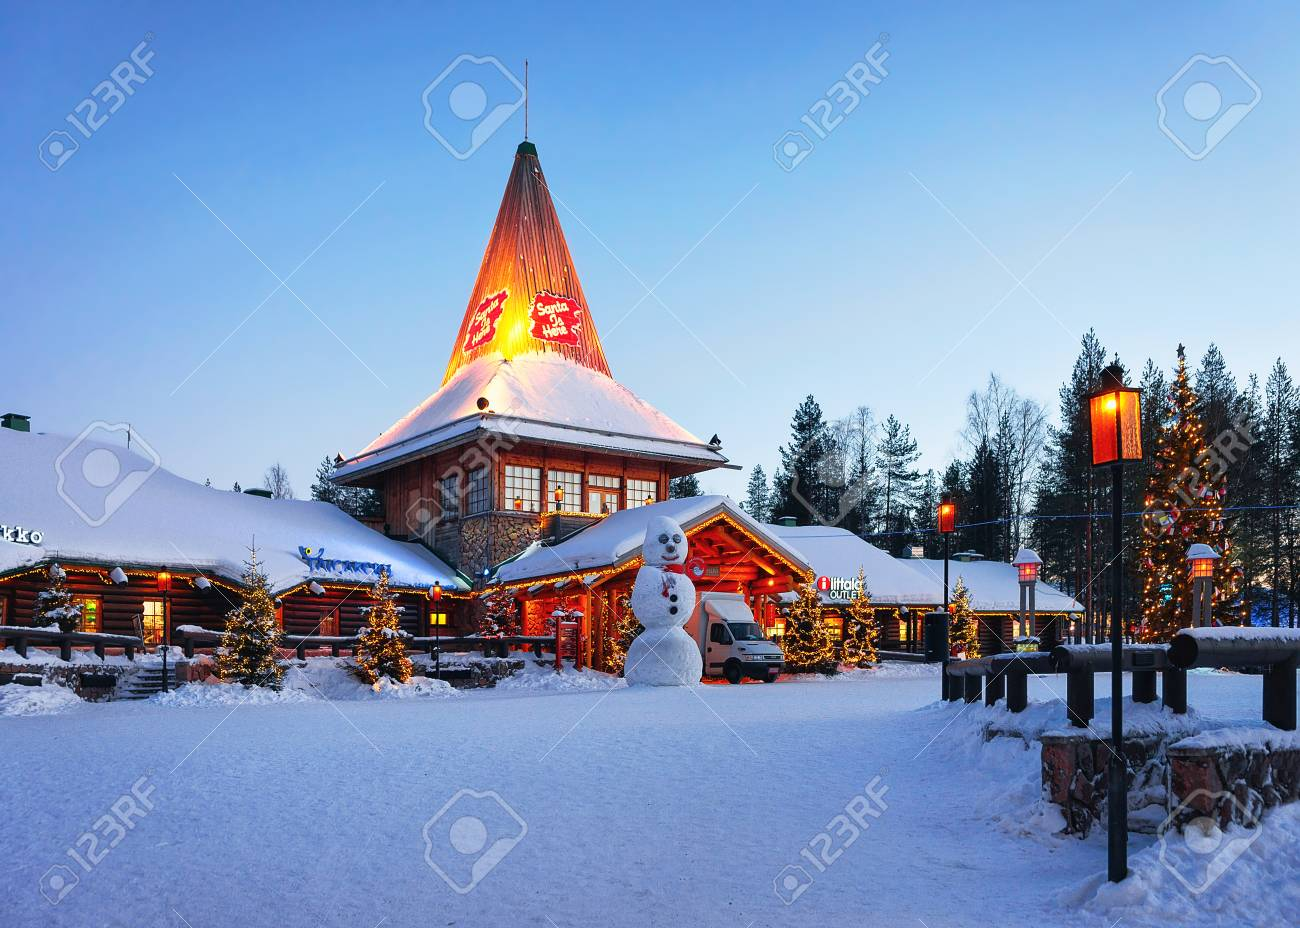 Rovaniemi, Finland - March 6, 2017: Snowman at Santa Office at Santa Claus Village, Rovaniemi, Lapland, Finland, on Arctic Circle in winter. In the evening. Outdoor - 91486832